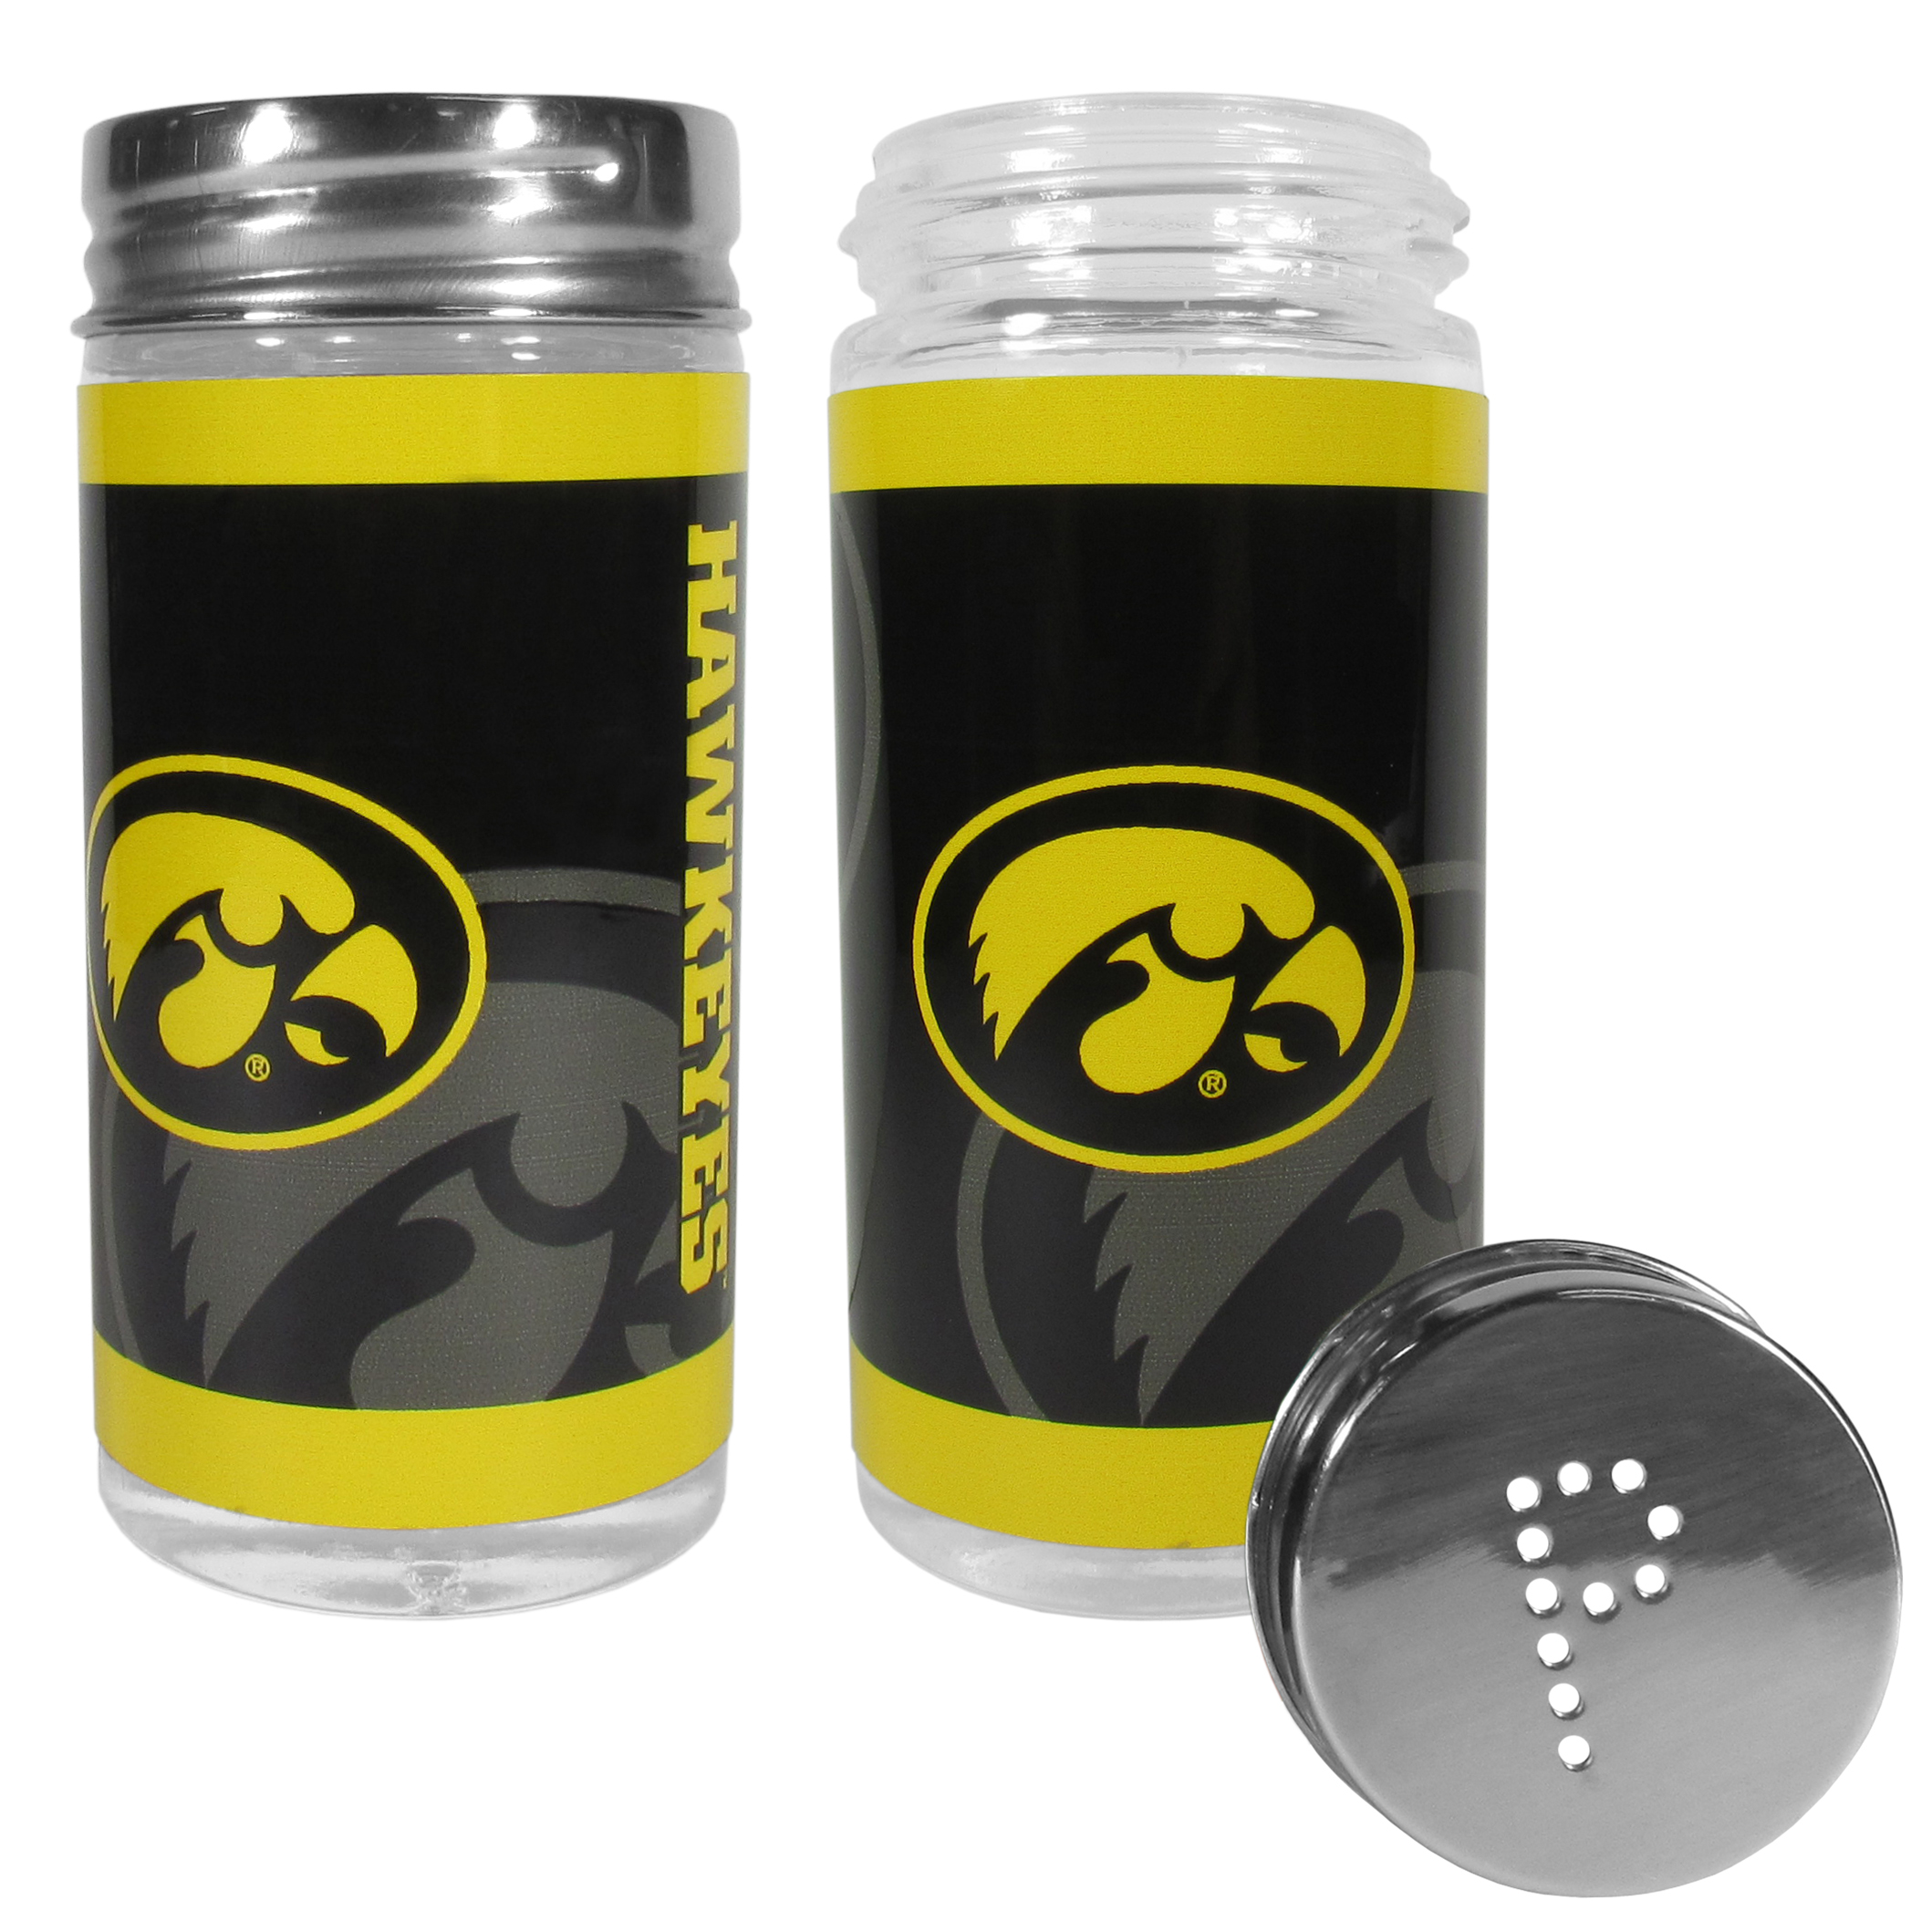 Iowa Hawkeyes Tailgater Salt & Pepper Shakers - No tailgate party is complete without your Iowa Hawkeyes salt & pepper shakers featuring bright team graphics. The glass shakers are 3.75 inches tall and the screw top lids have holes that spell out P and S. These team shakers are a great grill accessory whether you are barbecuing on the patio, picnicing or having a game day party.